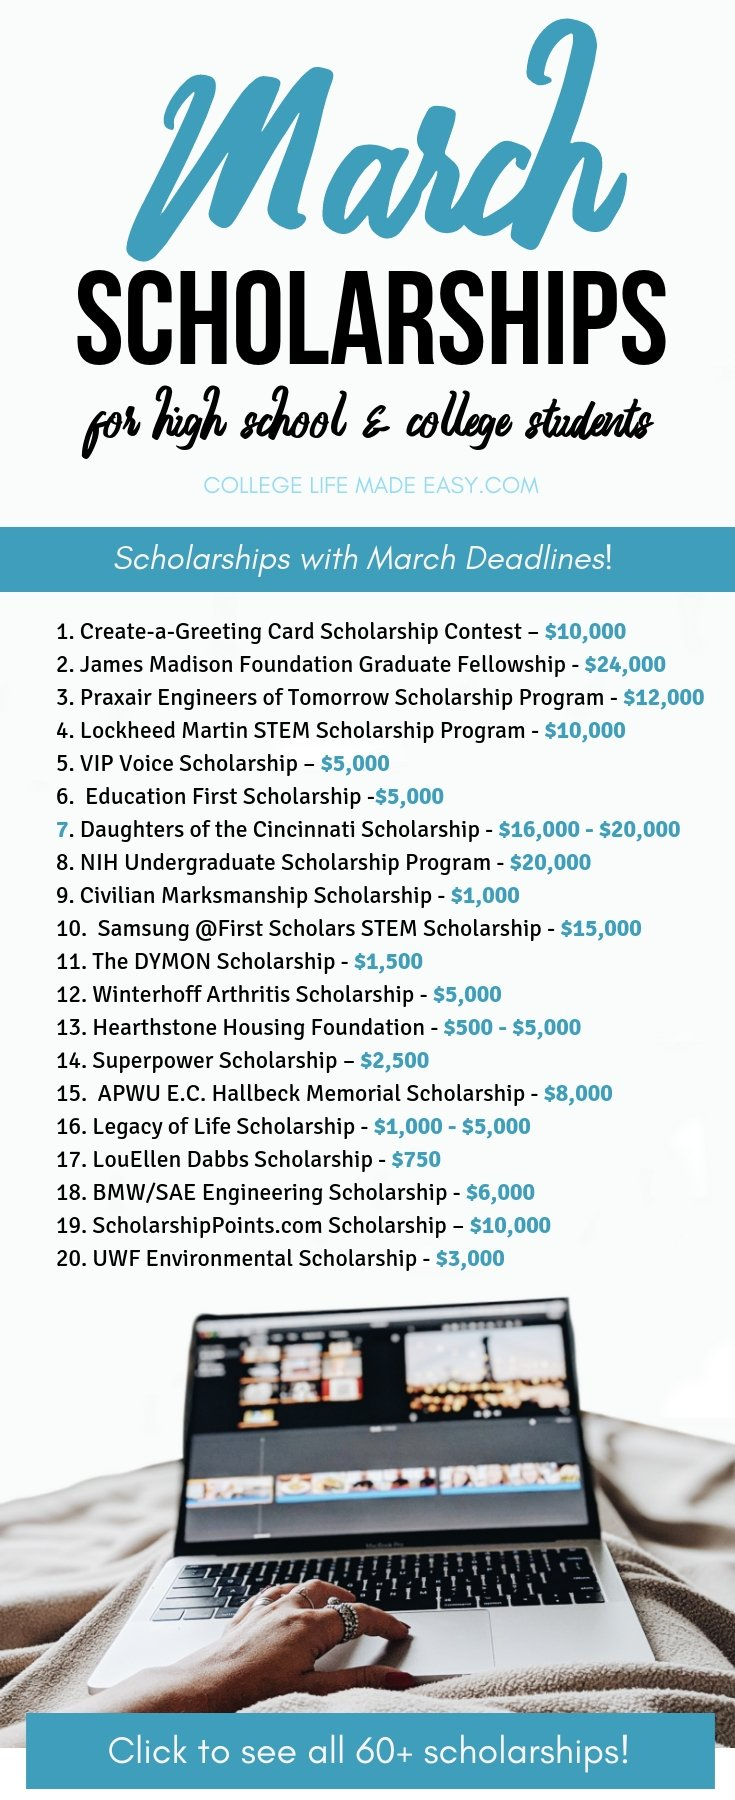 The big, UP TO DATE list of March Scholarships for high school and college students. There are over 60 opportunities to score money for covering college tuition & fee costs! Click to see the full list and to start applying at CollegeLifeMadeEasy.com. #college #collegelife #scholarship #scholarships #highschool #gradschool #undergrad #seniors #juniors #highschoolstudents #award #women